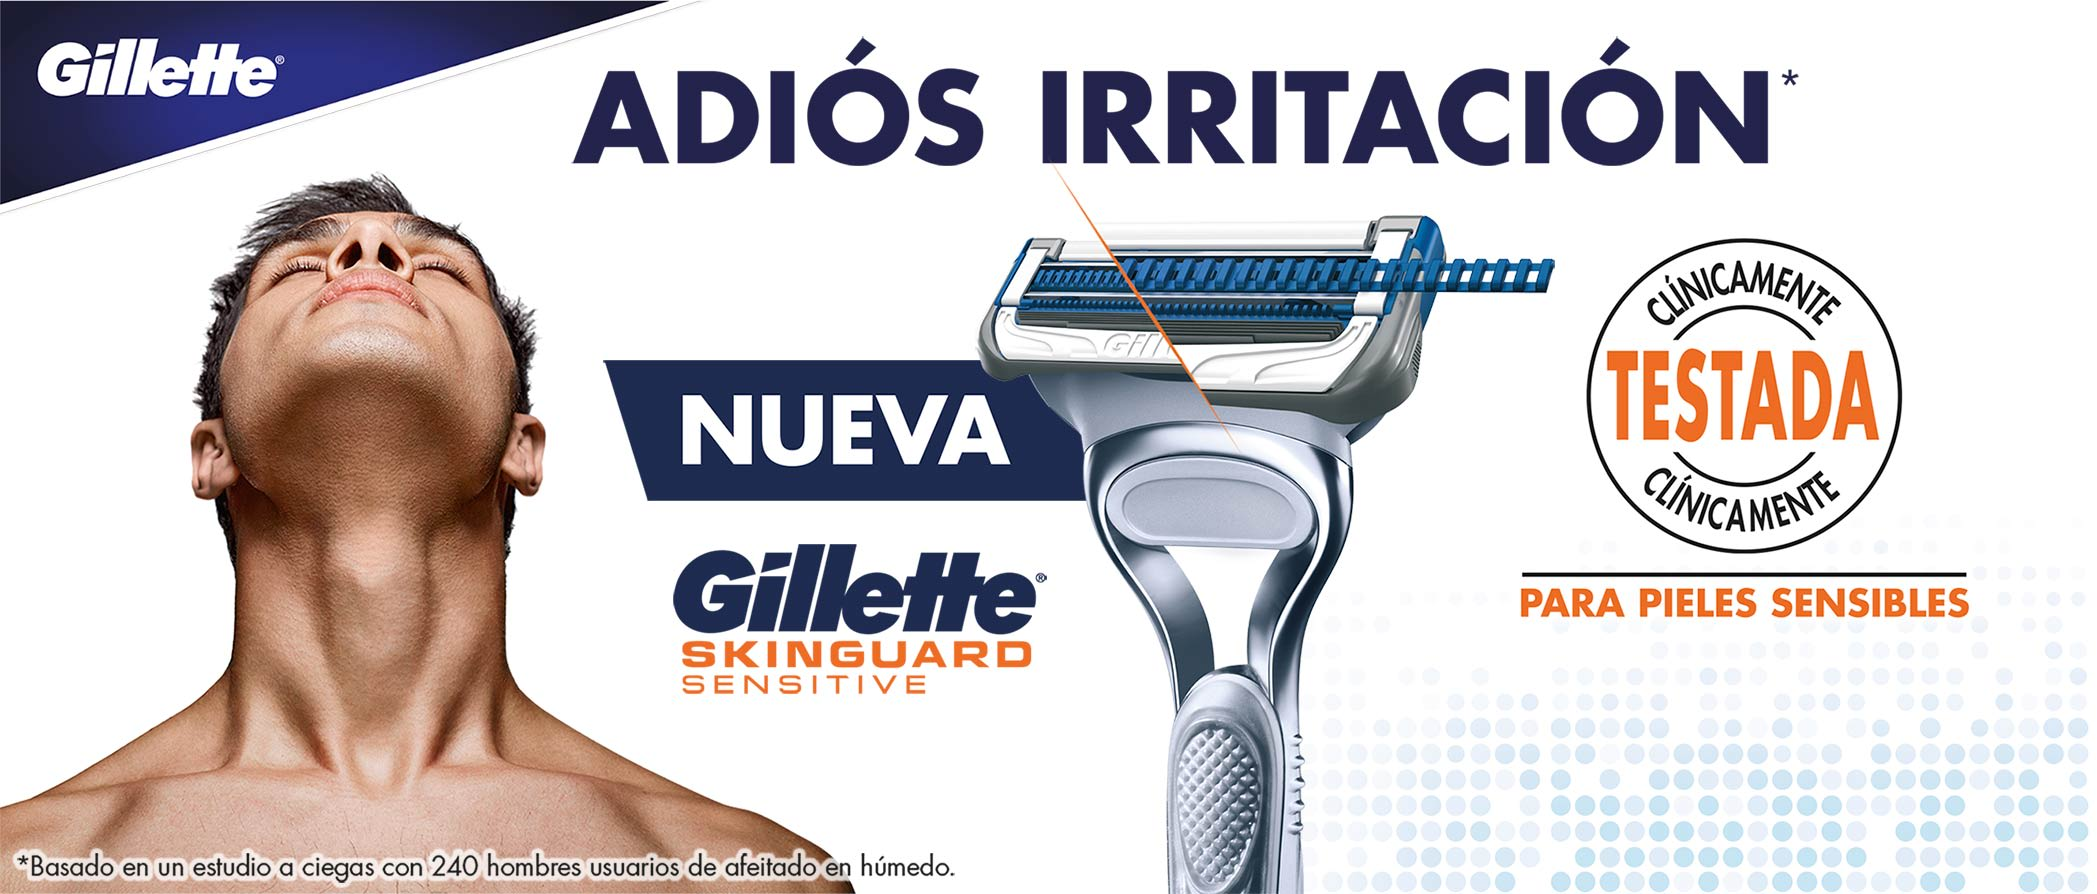 Gillette SkinGuard Technology for men with sensitive skin